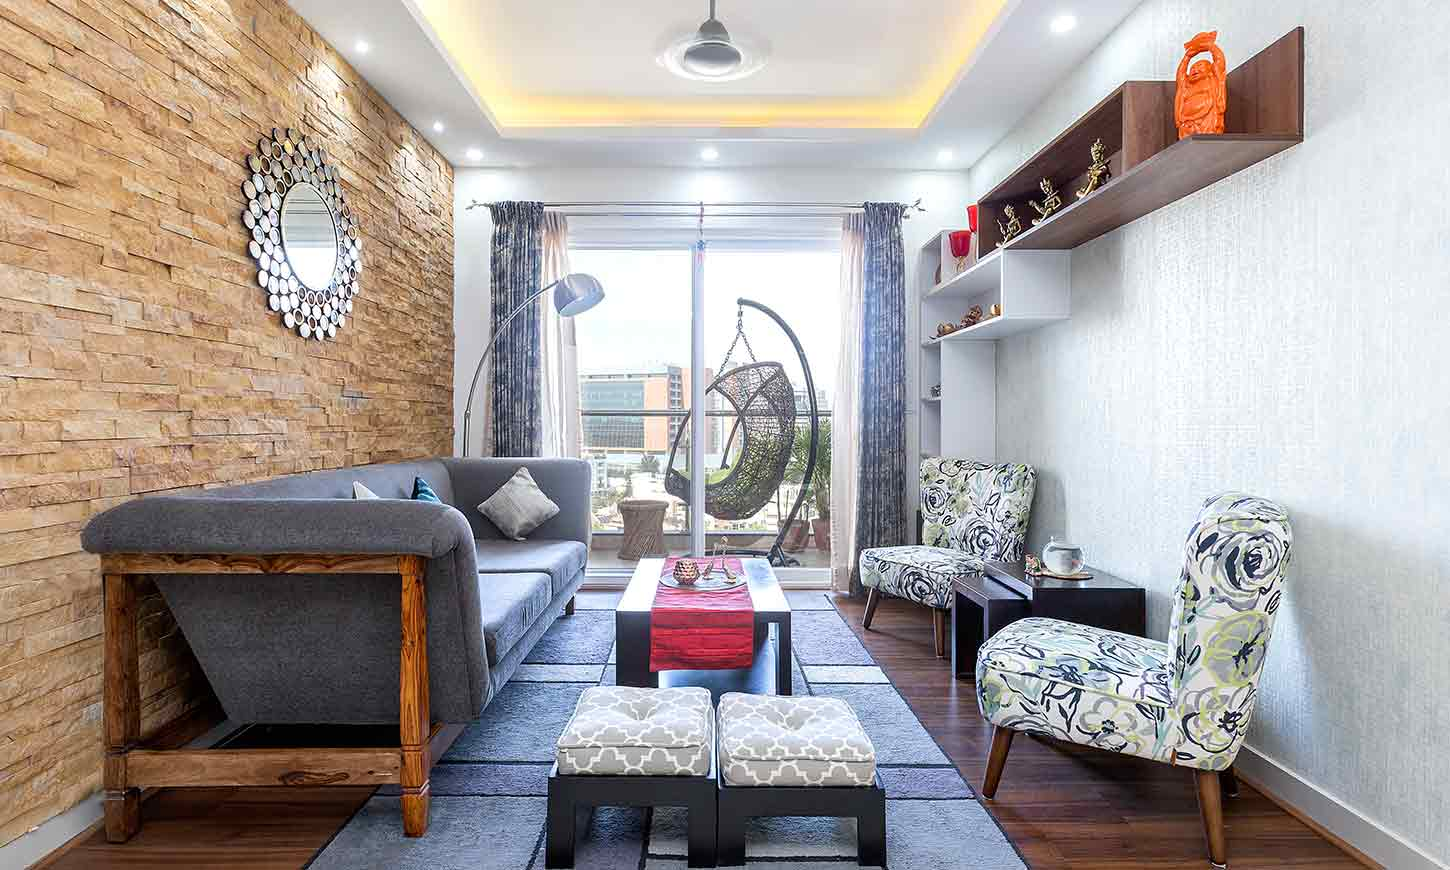 2.5 BHK home designed by Design Cafe best home interior designers in Bangalore